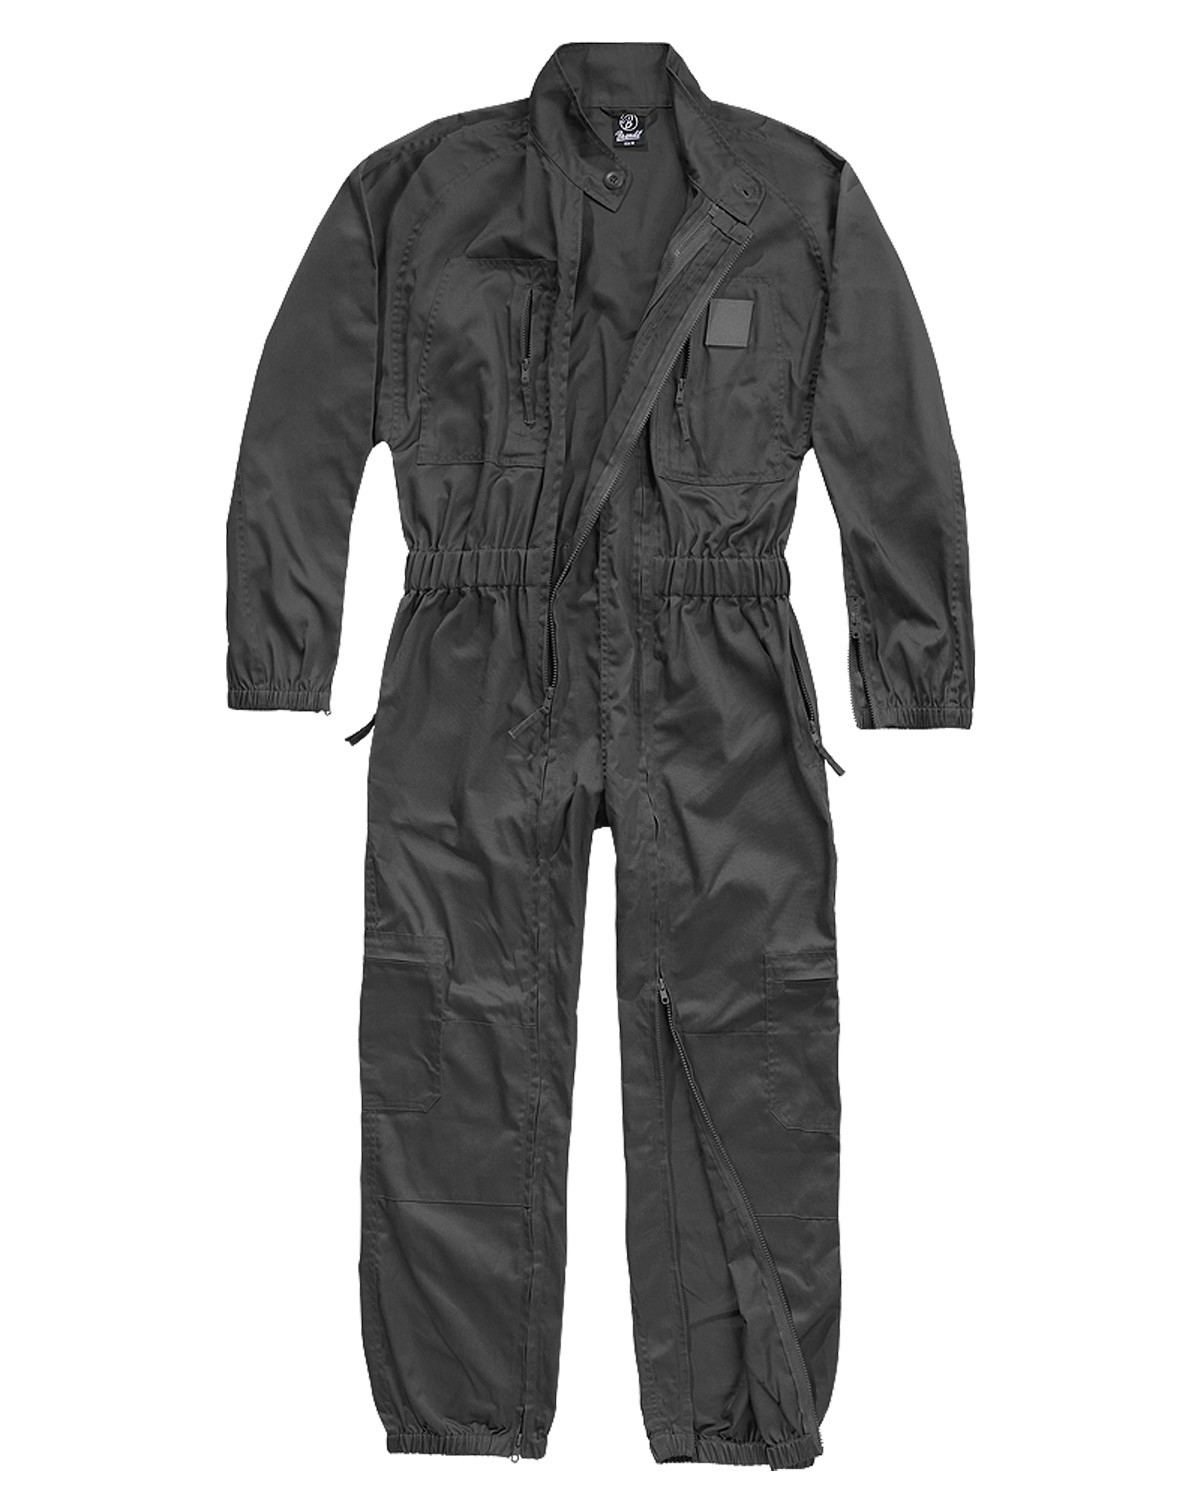 Image of   Brandit Heldragt - Flightsuit u. Foer (Antracit, 2XL)